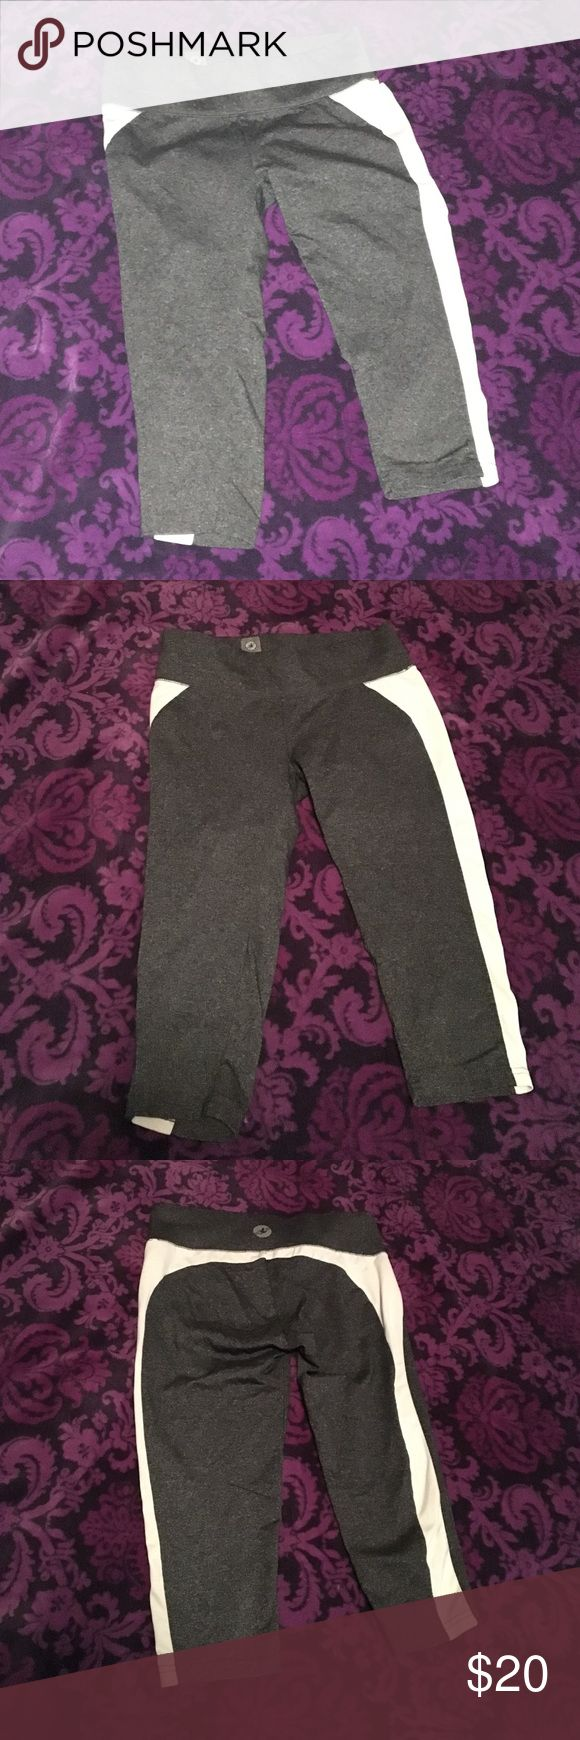 Workout pants Workout pants/Running leggings. Really like them but kind of small for me and don't wear them that much. Seem brand new!! Very comfy! Small pocket on the inside! aerie fit Pants Capris